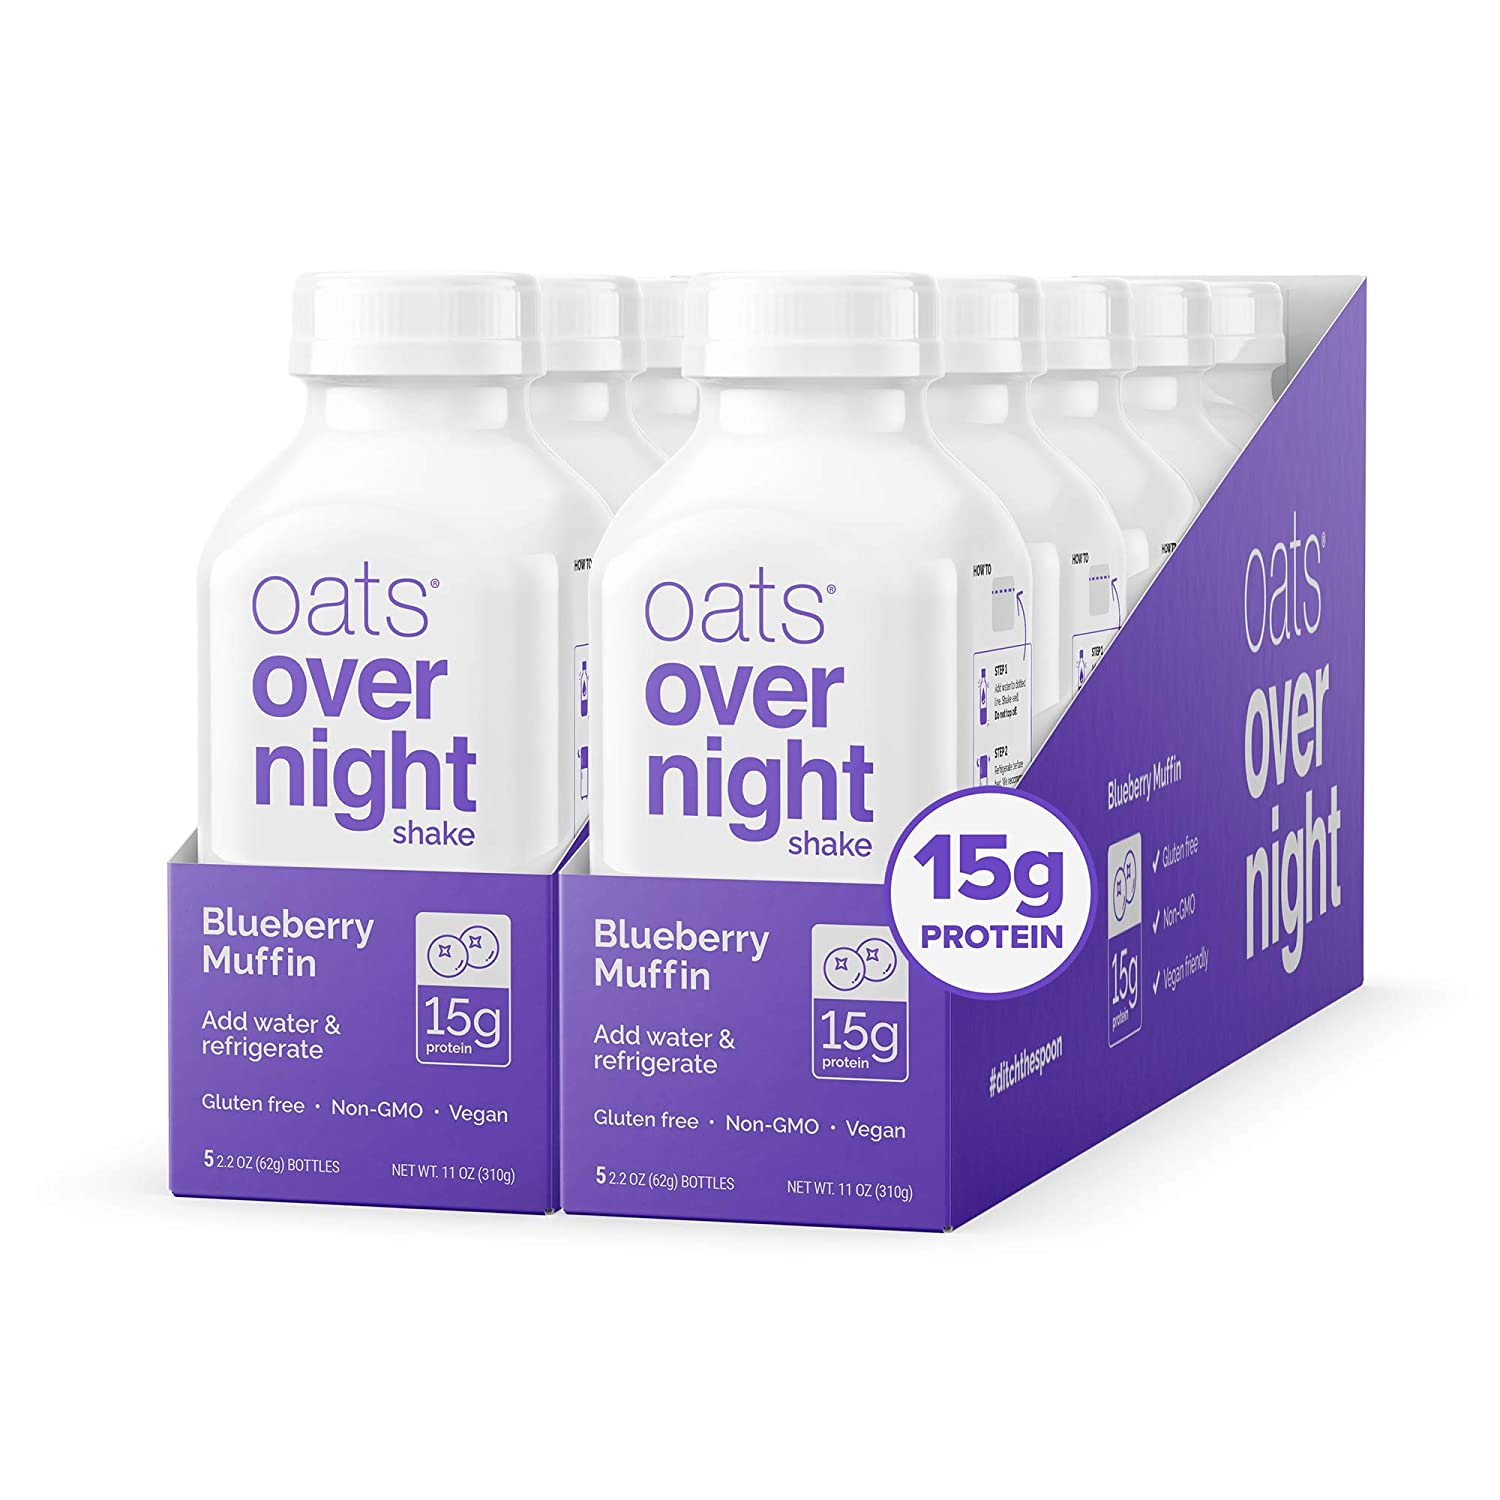 Oats Overnight Blueberry Muffin Bottled Shake - Gluten Free, Non-GMO, Vegan Friendly Breakfast Meal Replacement Shake with Powdered Oat milk. 15g of Protein (10 Pack)